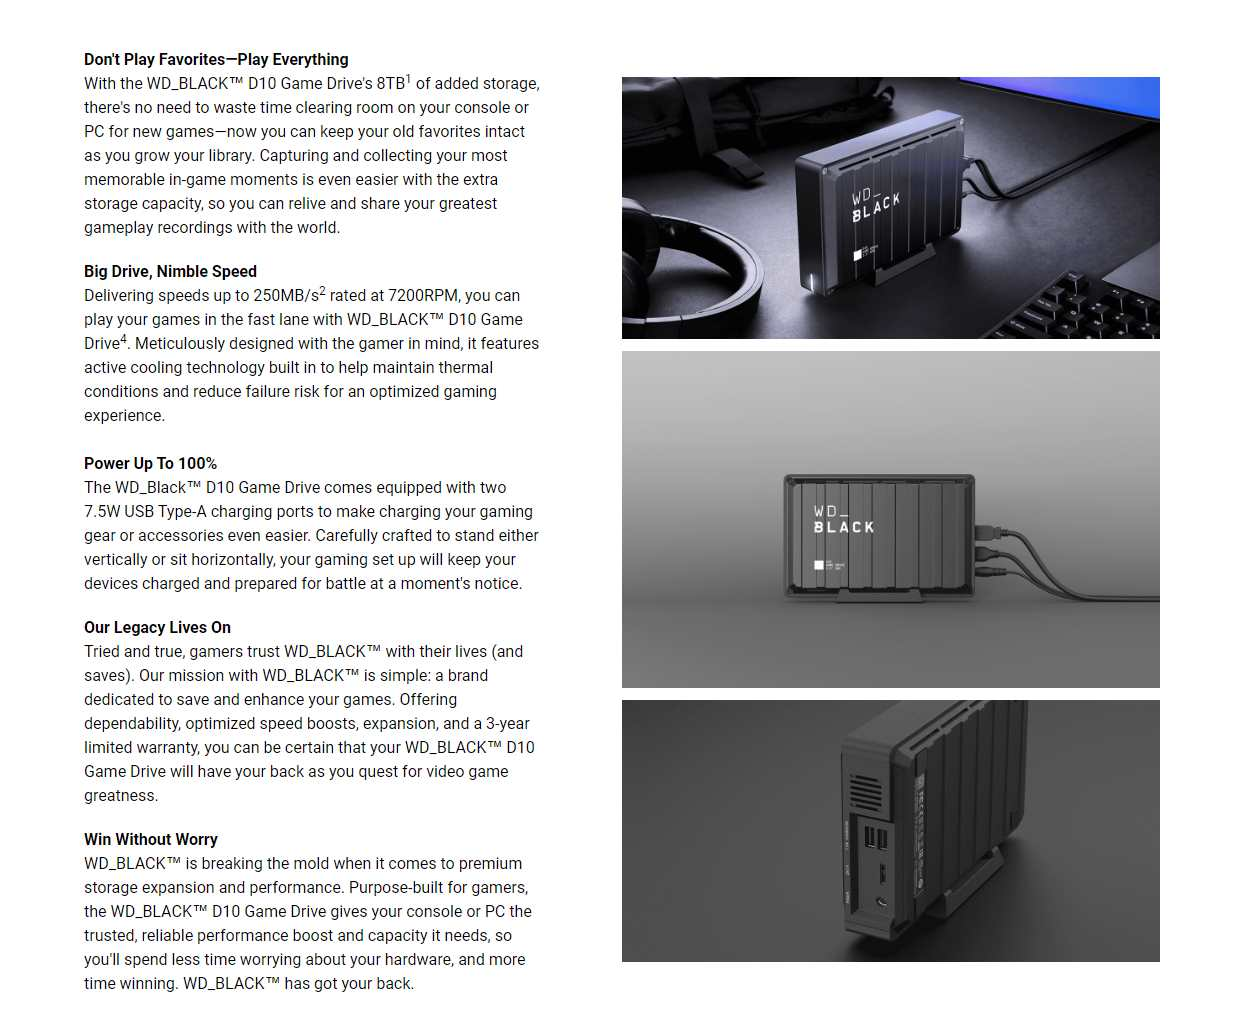 A large marketing image providing additional information about the product WD_BLACK D10 8TB Desktop External Hard Drive - Additional alt info not provided